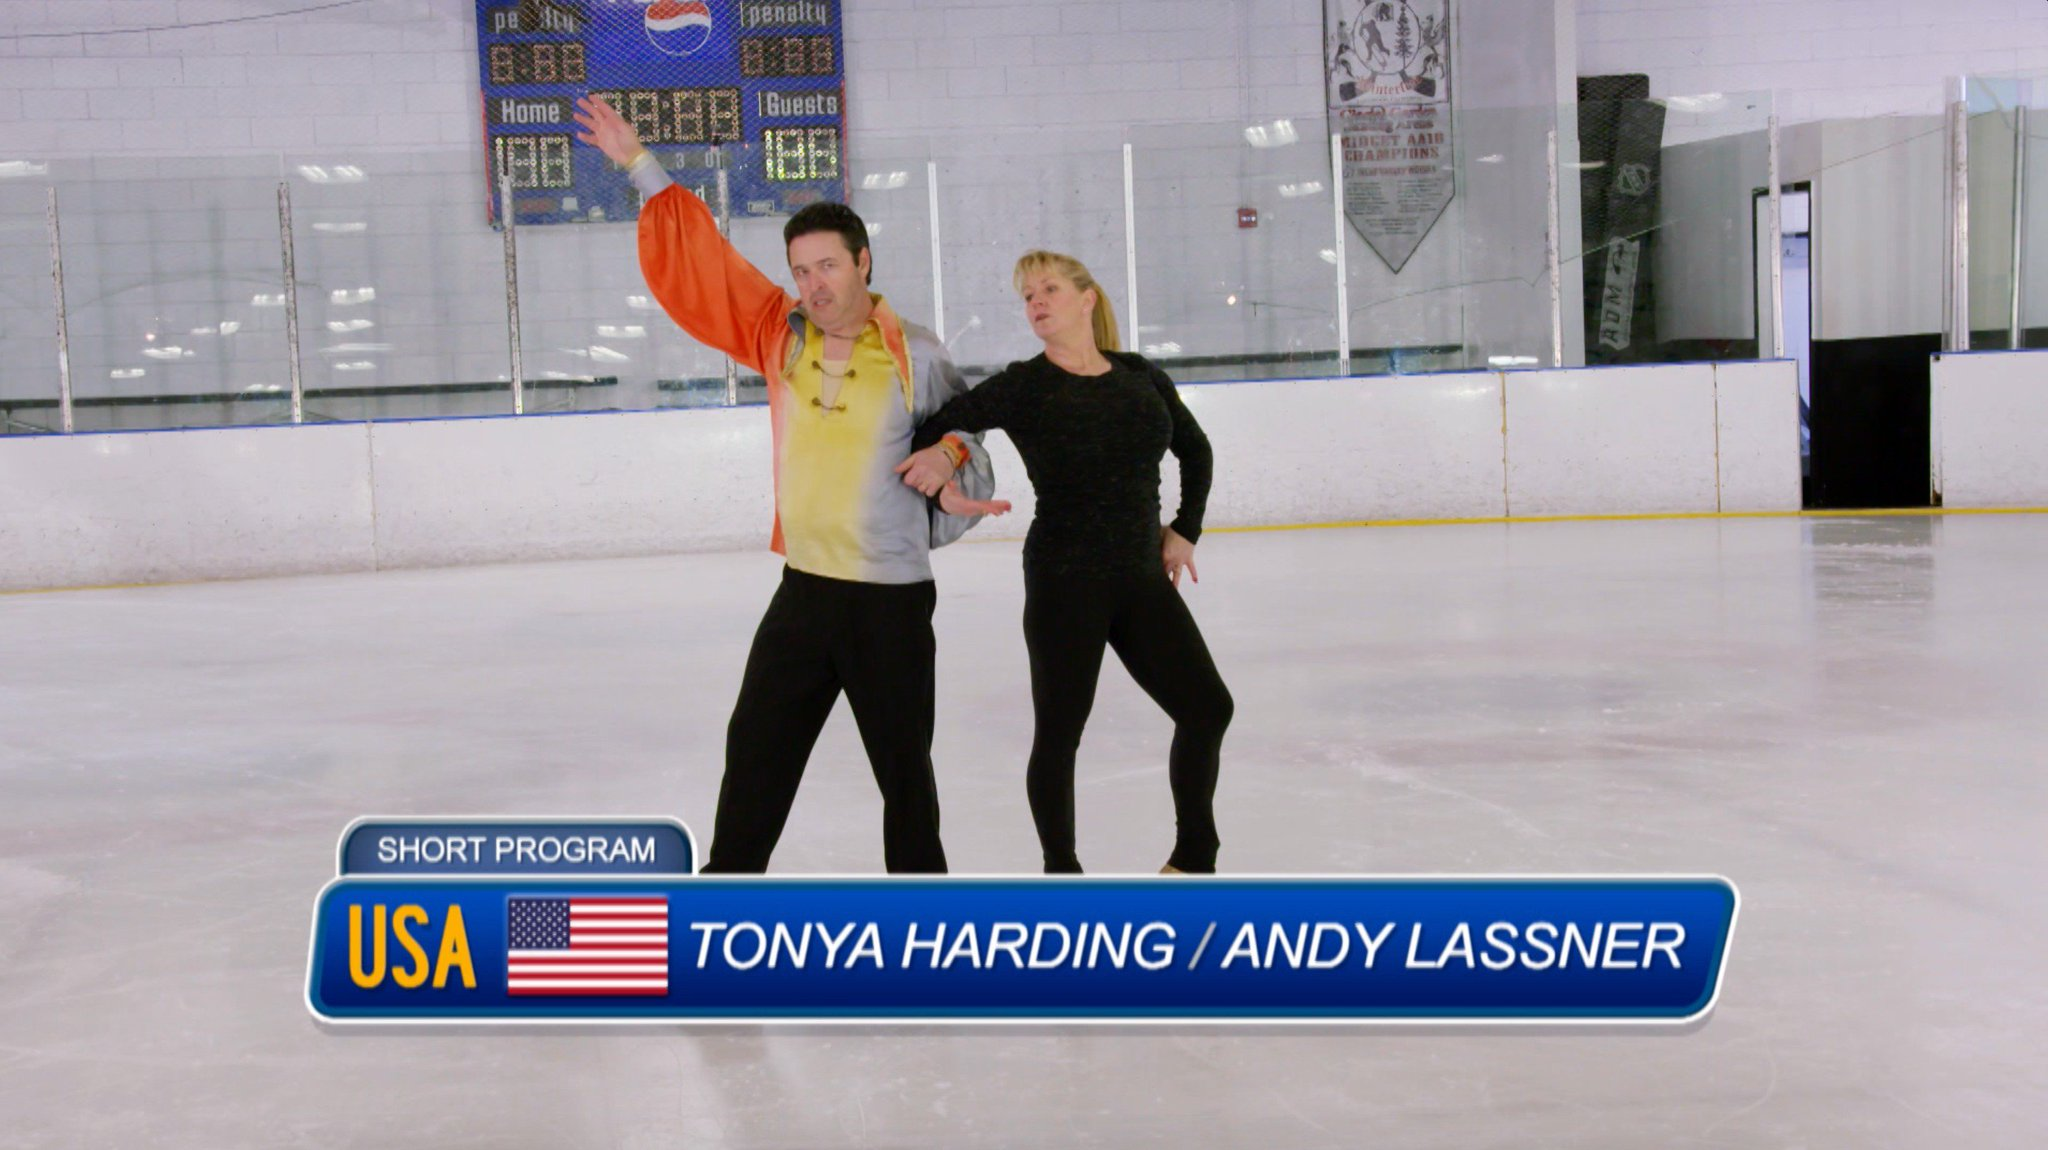 Good luck trying to unsee @AndyLassner skating with Tonya Harding. #Spandex #AverageAndy https://t.co/0JIMEkwHvL